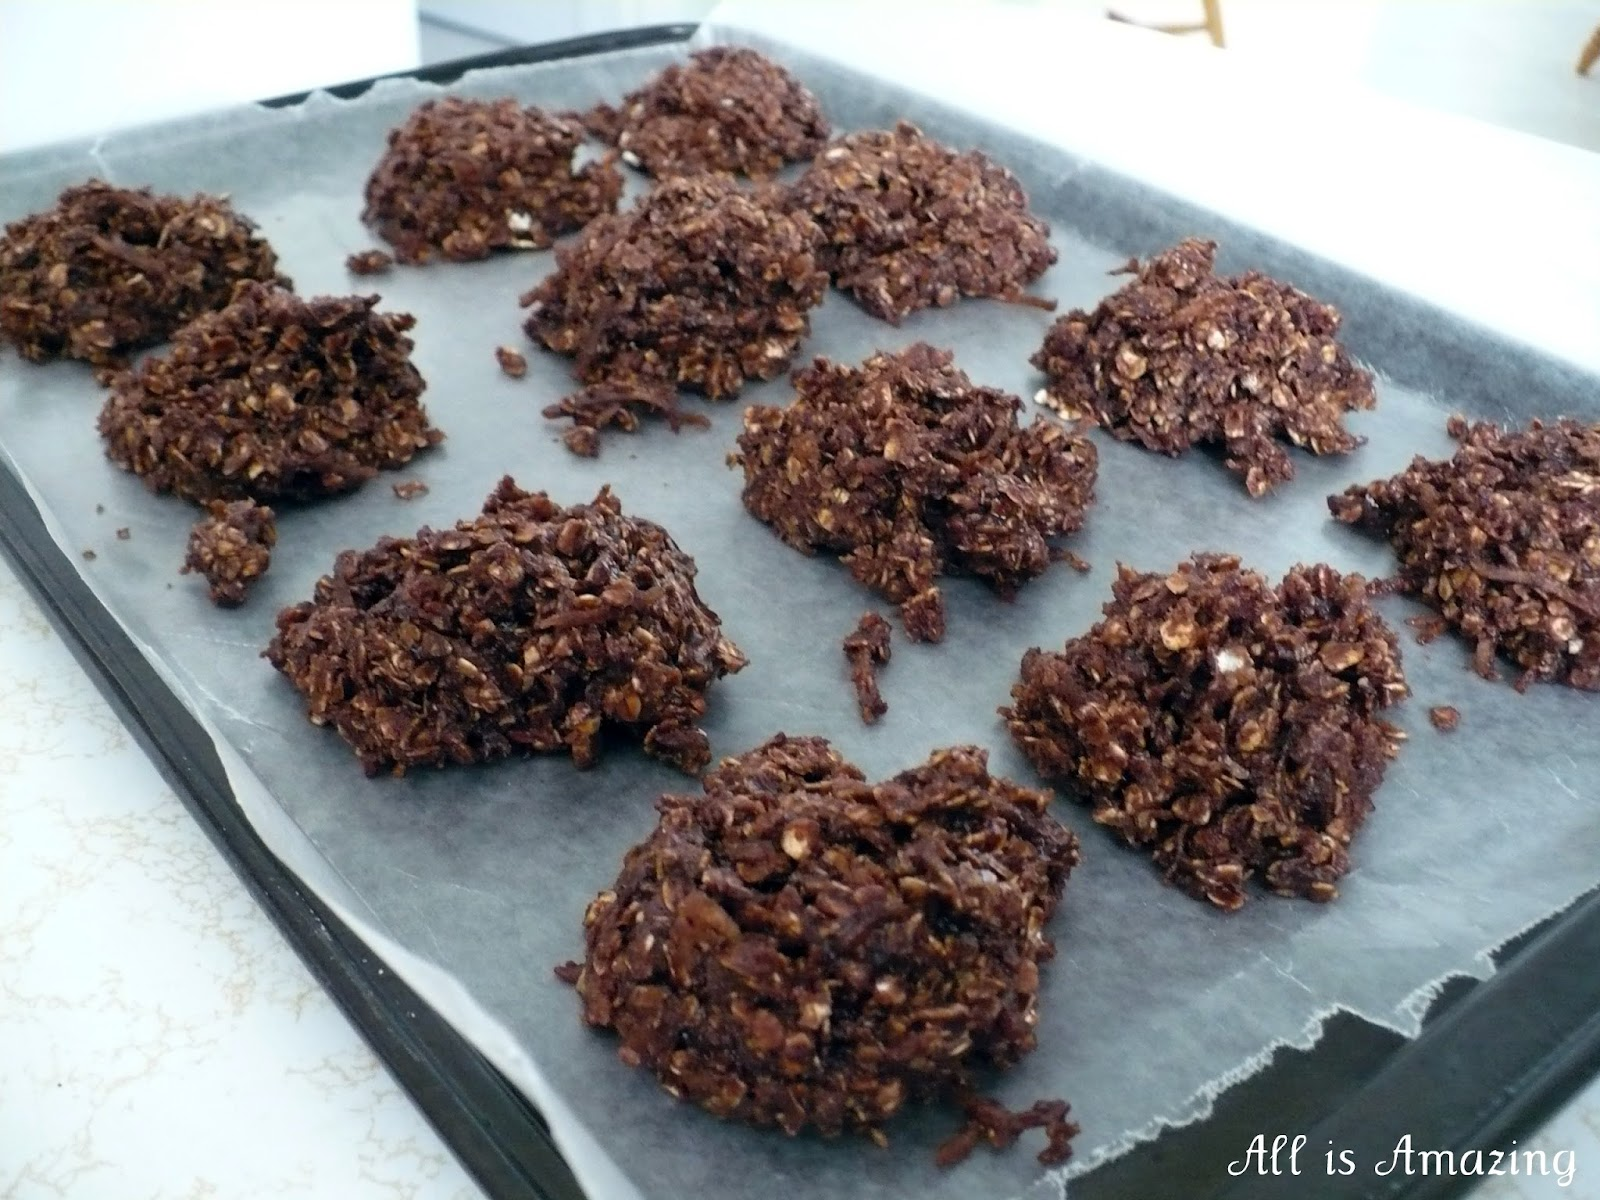 All is Amazing: No Bake Chocolate Oatmeal Cookies